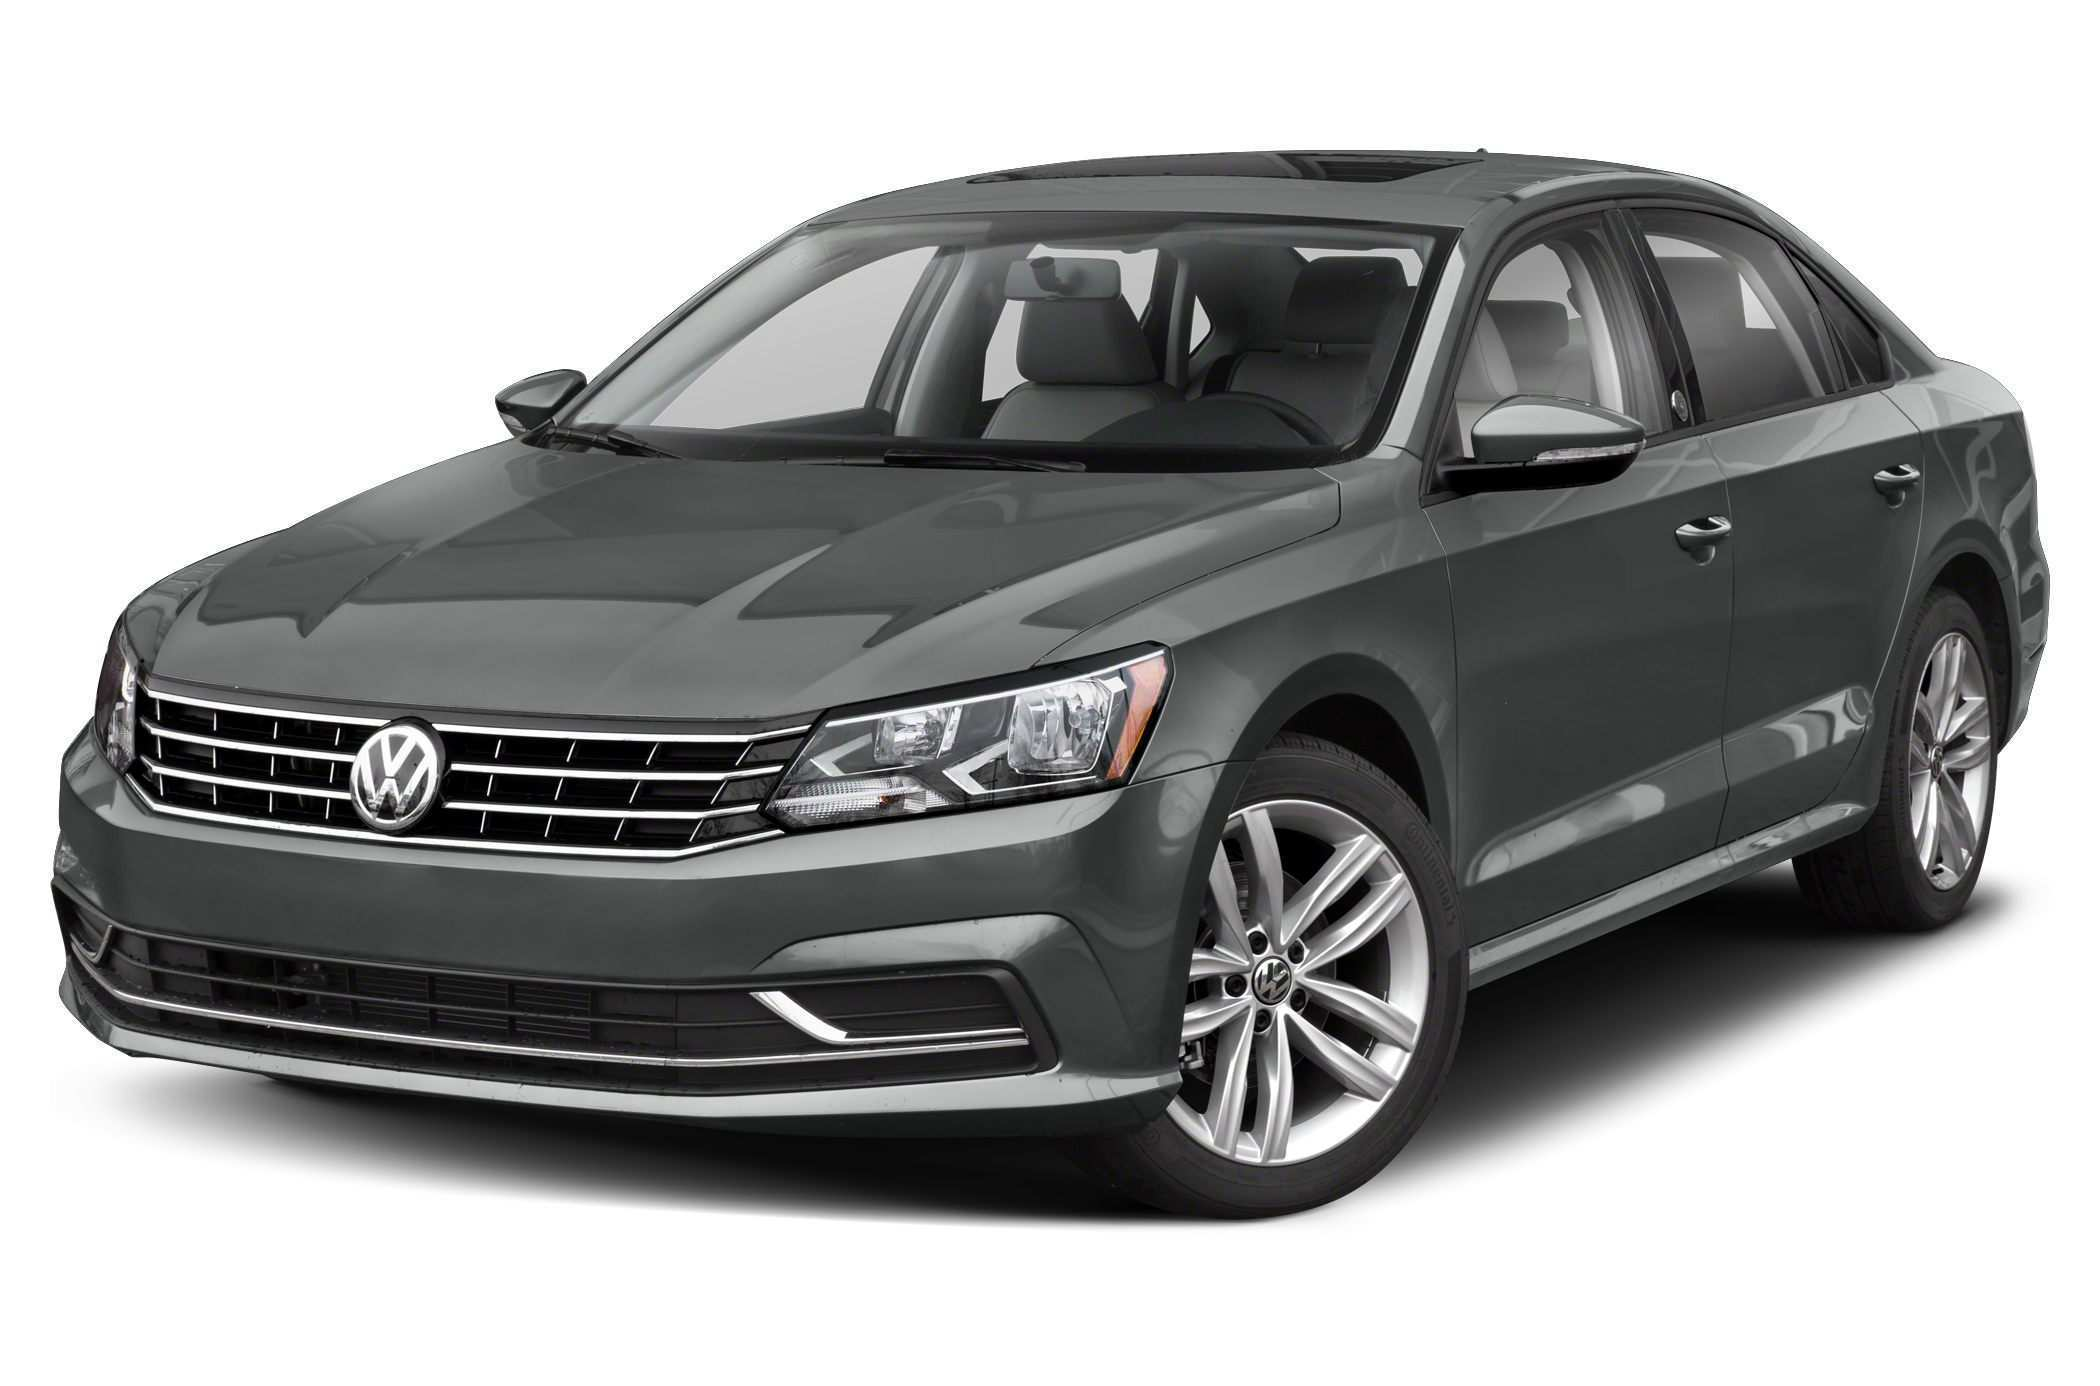 61 All New 2019 Volkswagen Passat Rumors